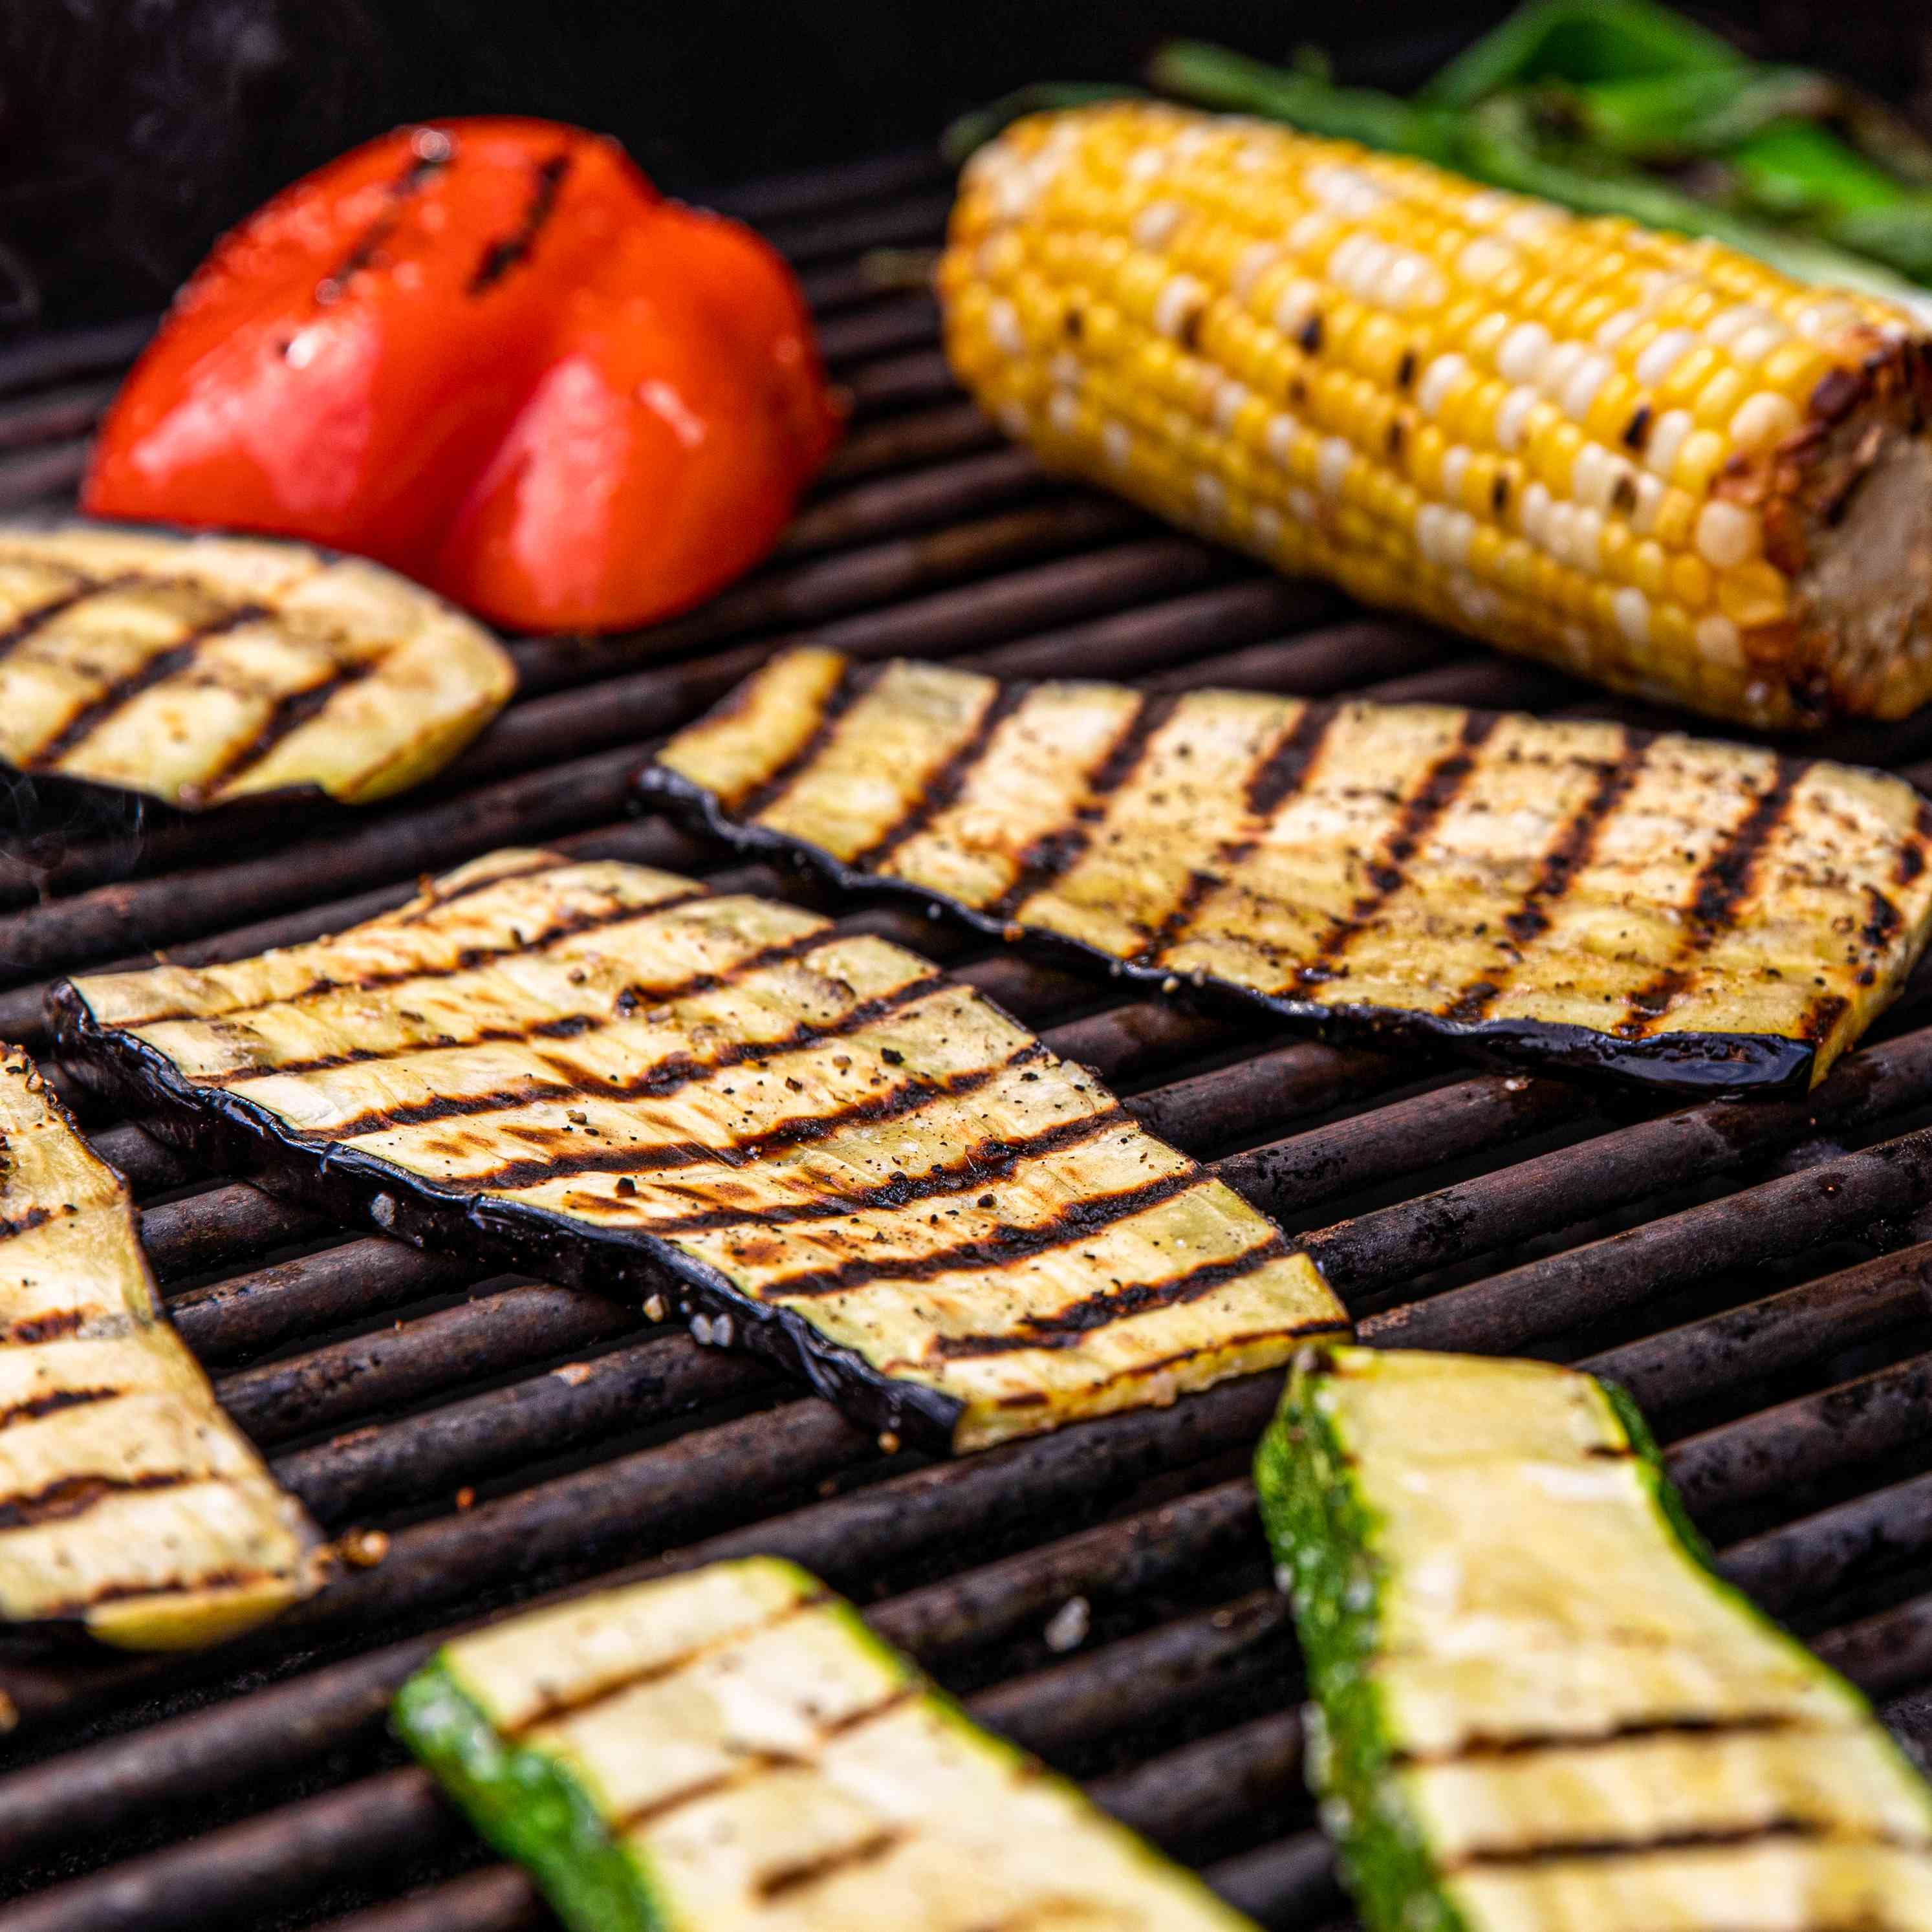 Sliced zucchini on the grill to make grilled summer vegetable nachos.